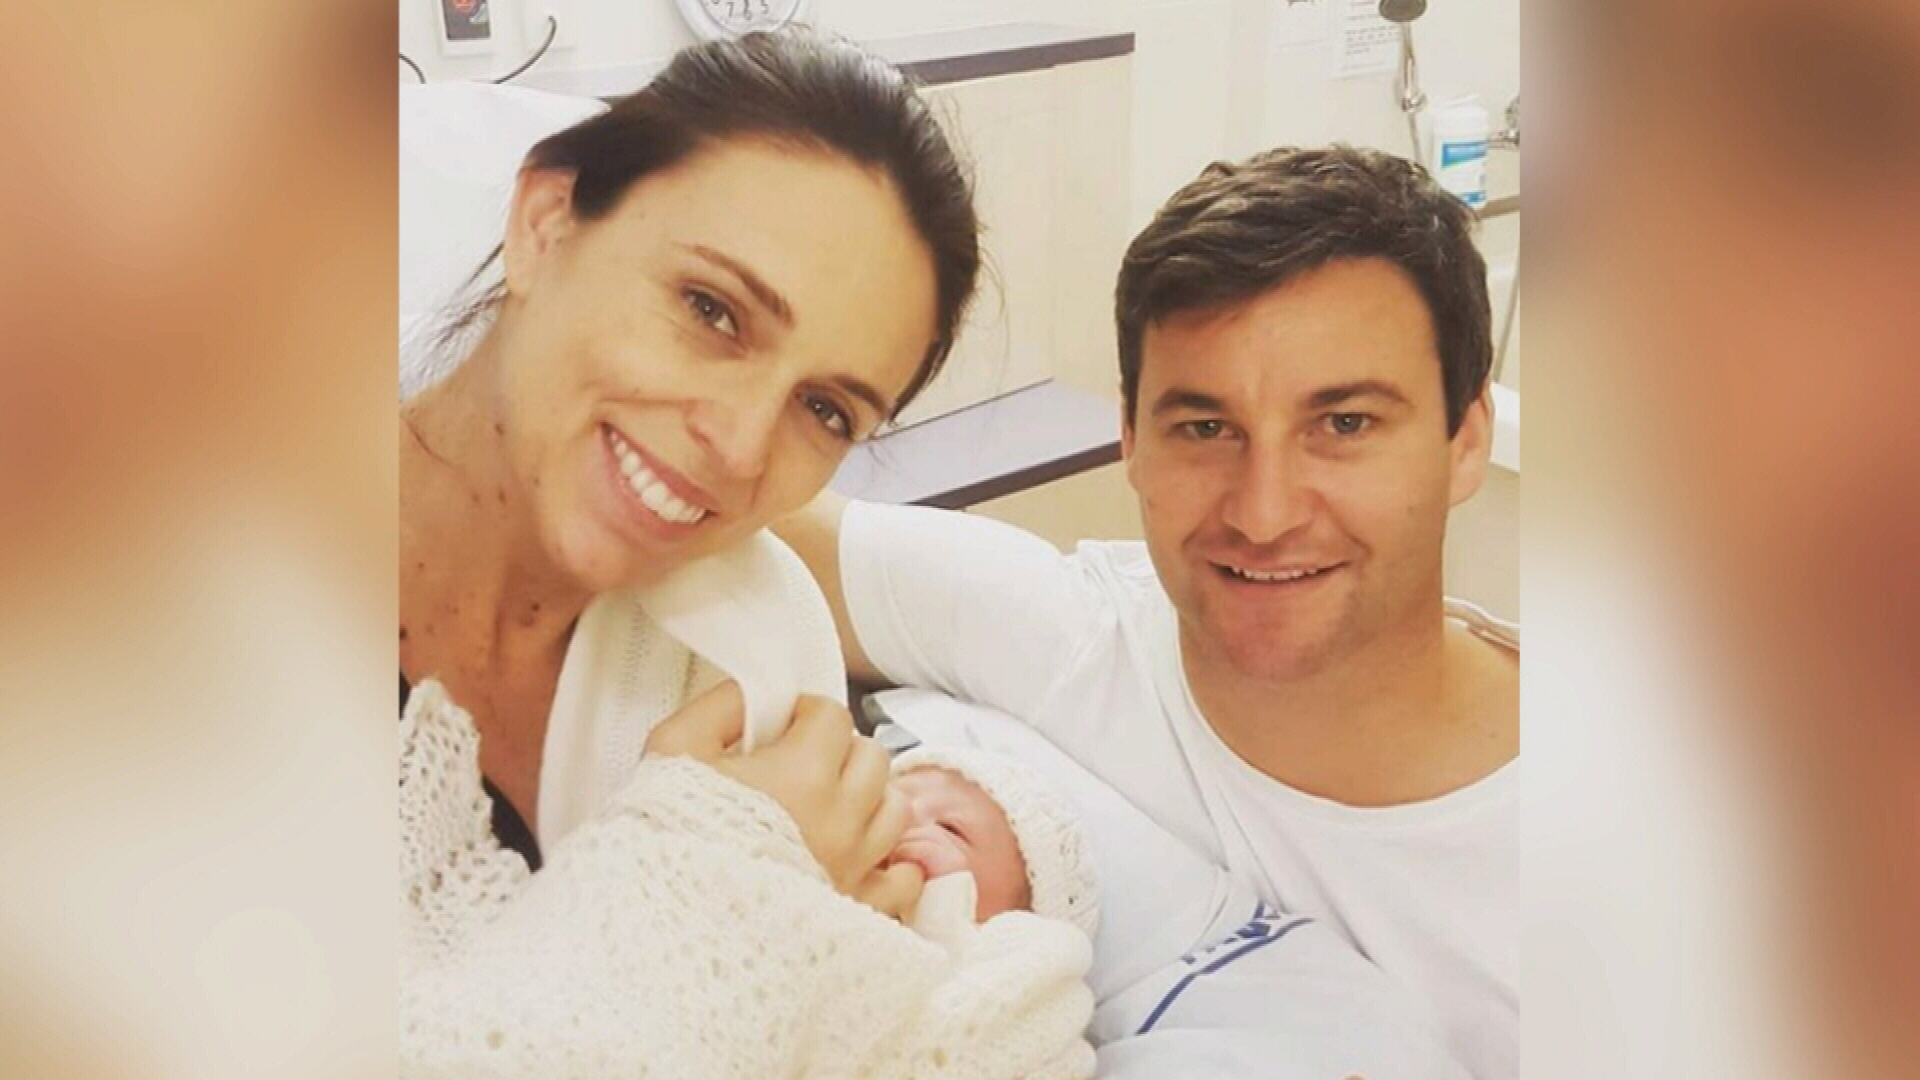 World leaders congratulate Jacinda Ardern on newborn girl